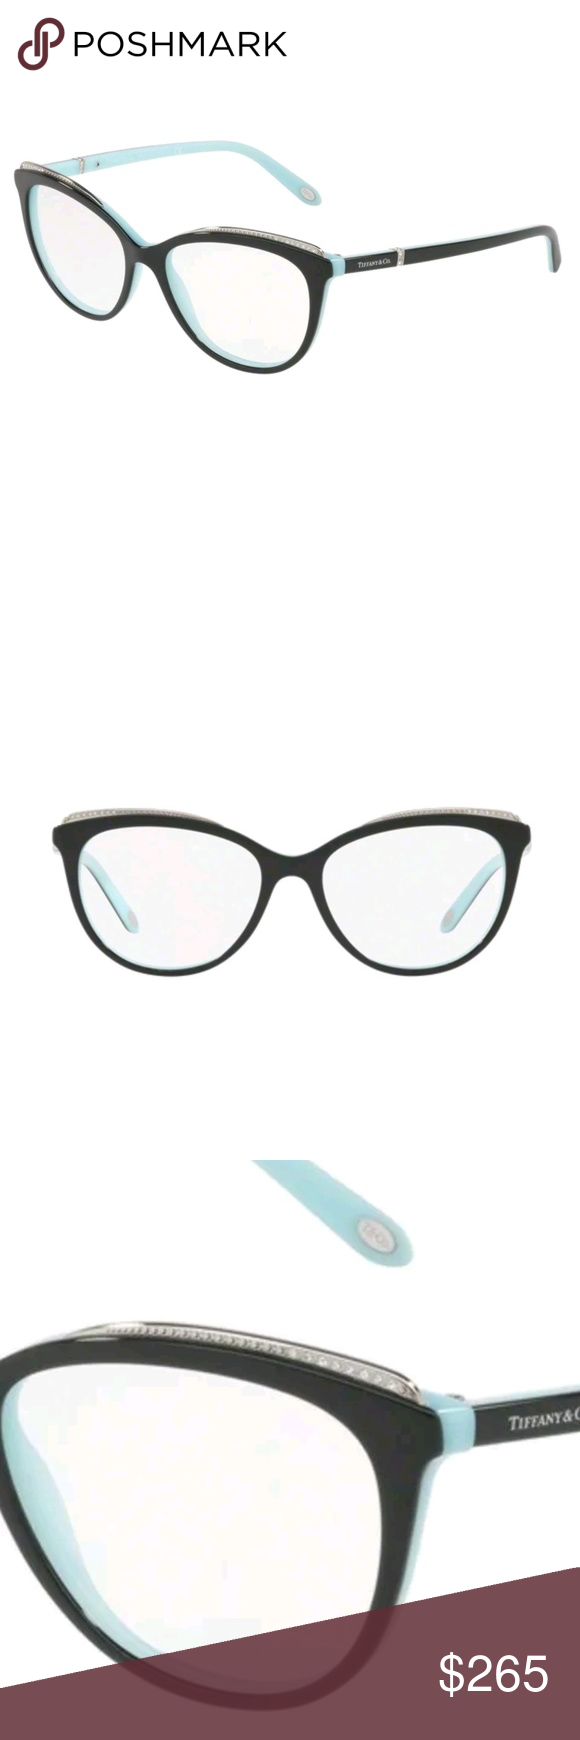 29eb20c18715 Tiffany   CO eyeglasses New and authentic Tiffany   CO eyeglasses Black and  teal frame 54-16-140 Includes case